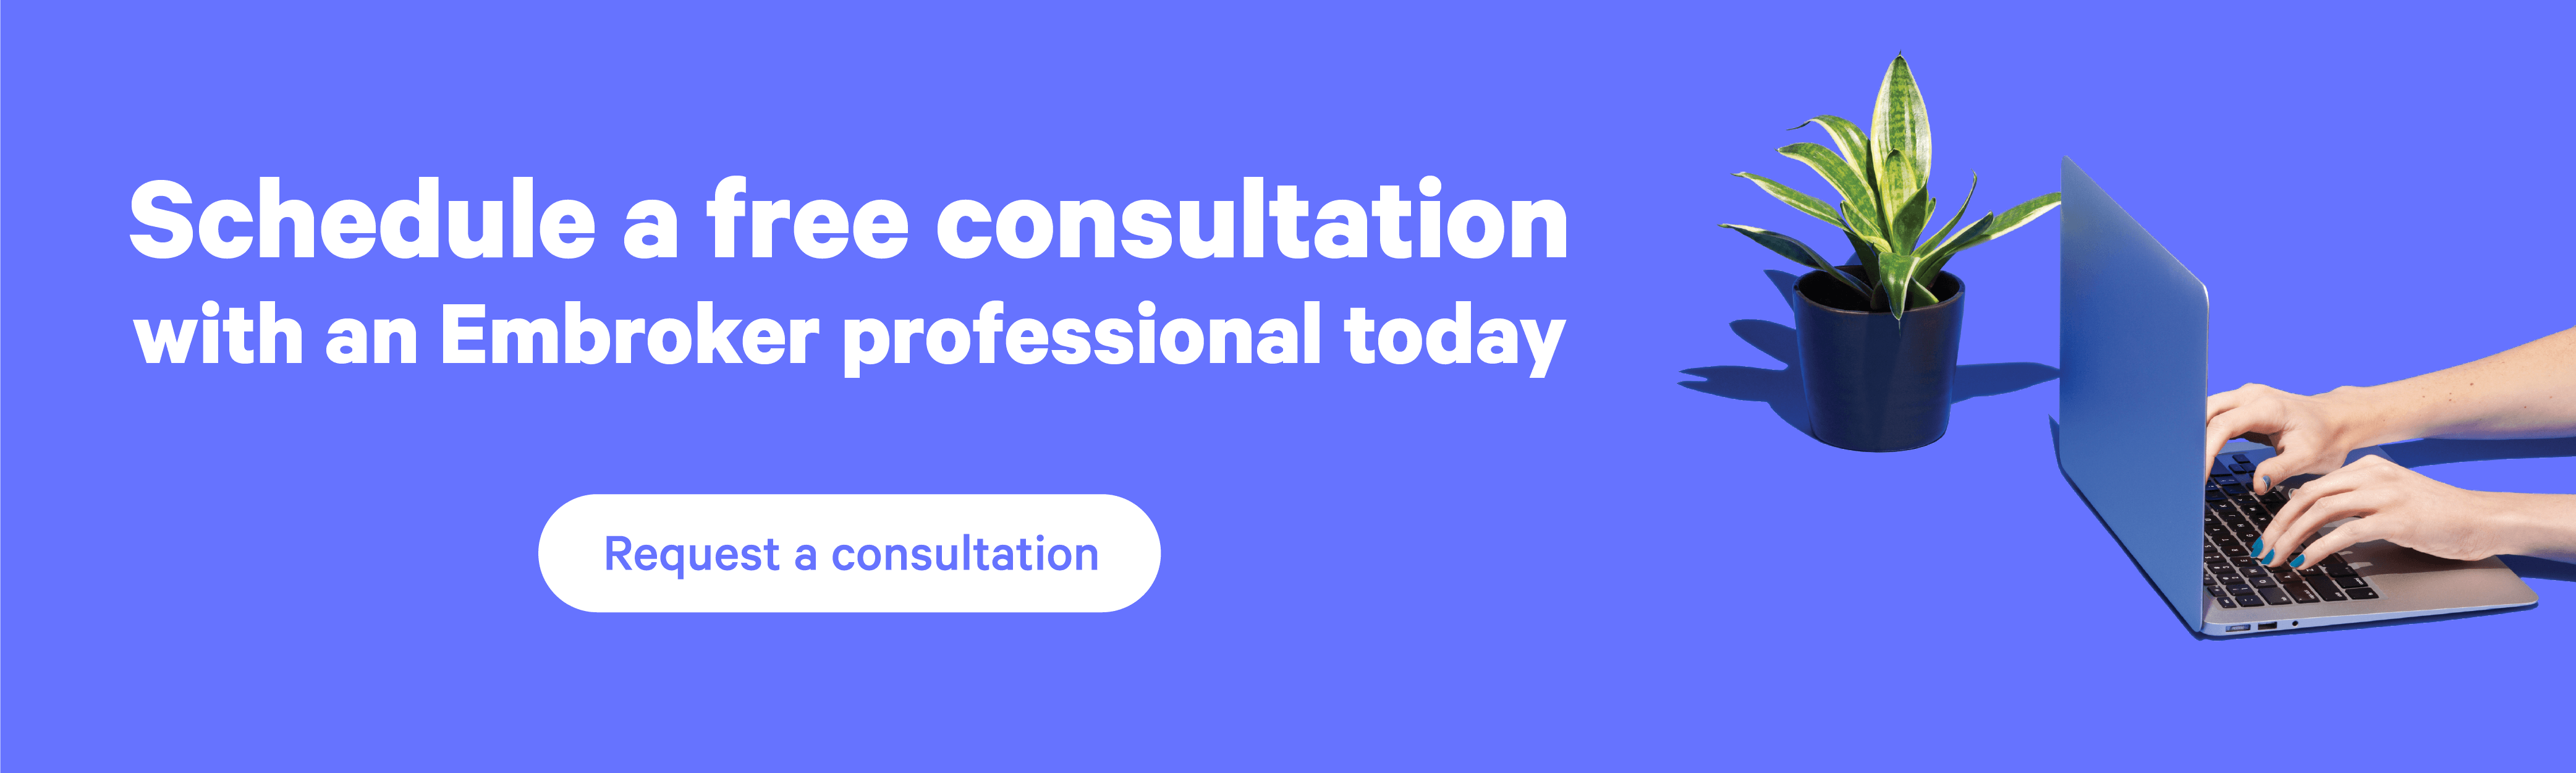 Schedule a free consultation with an Embroker professional